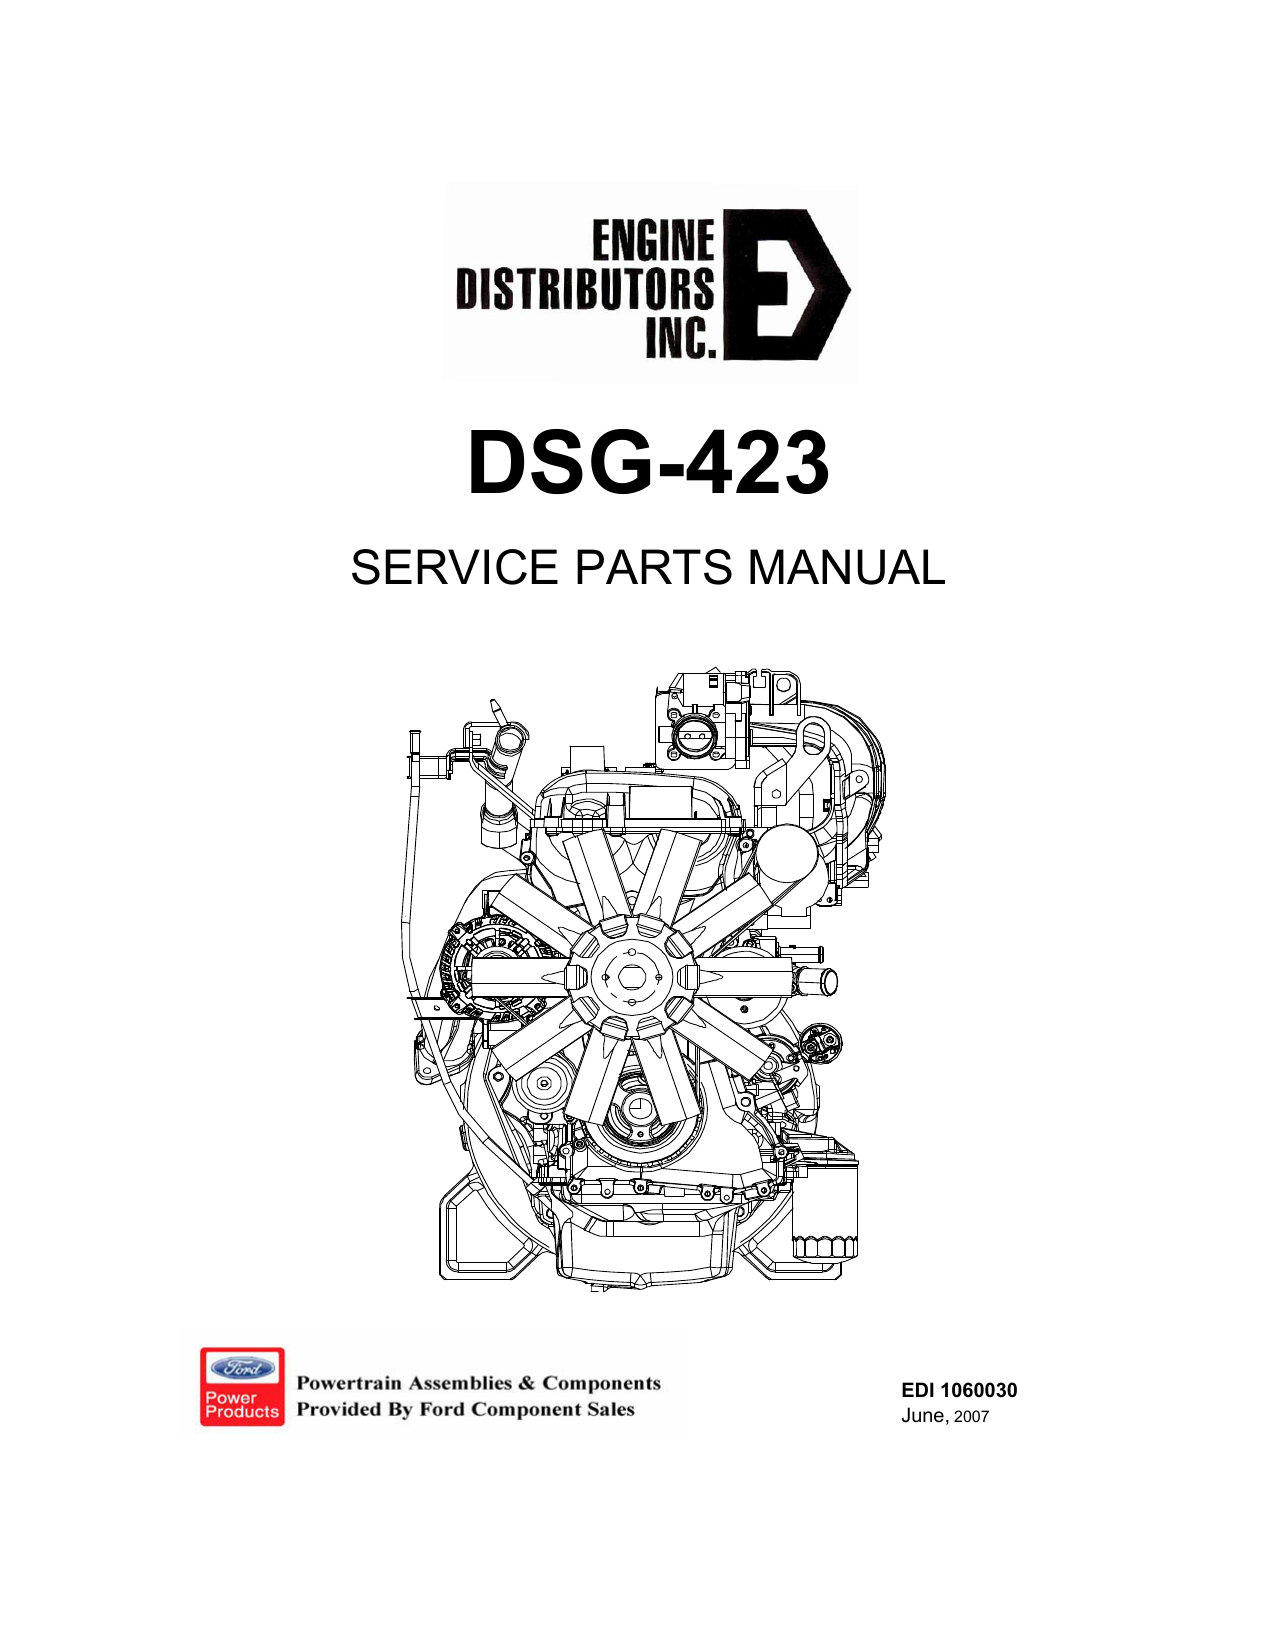 dsg 423 service parts manual without eng numbers rh paperzz com Ford Lightning On 24 Ford Lightning Foose Wheels